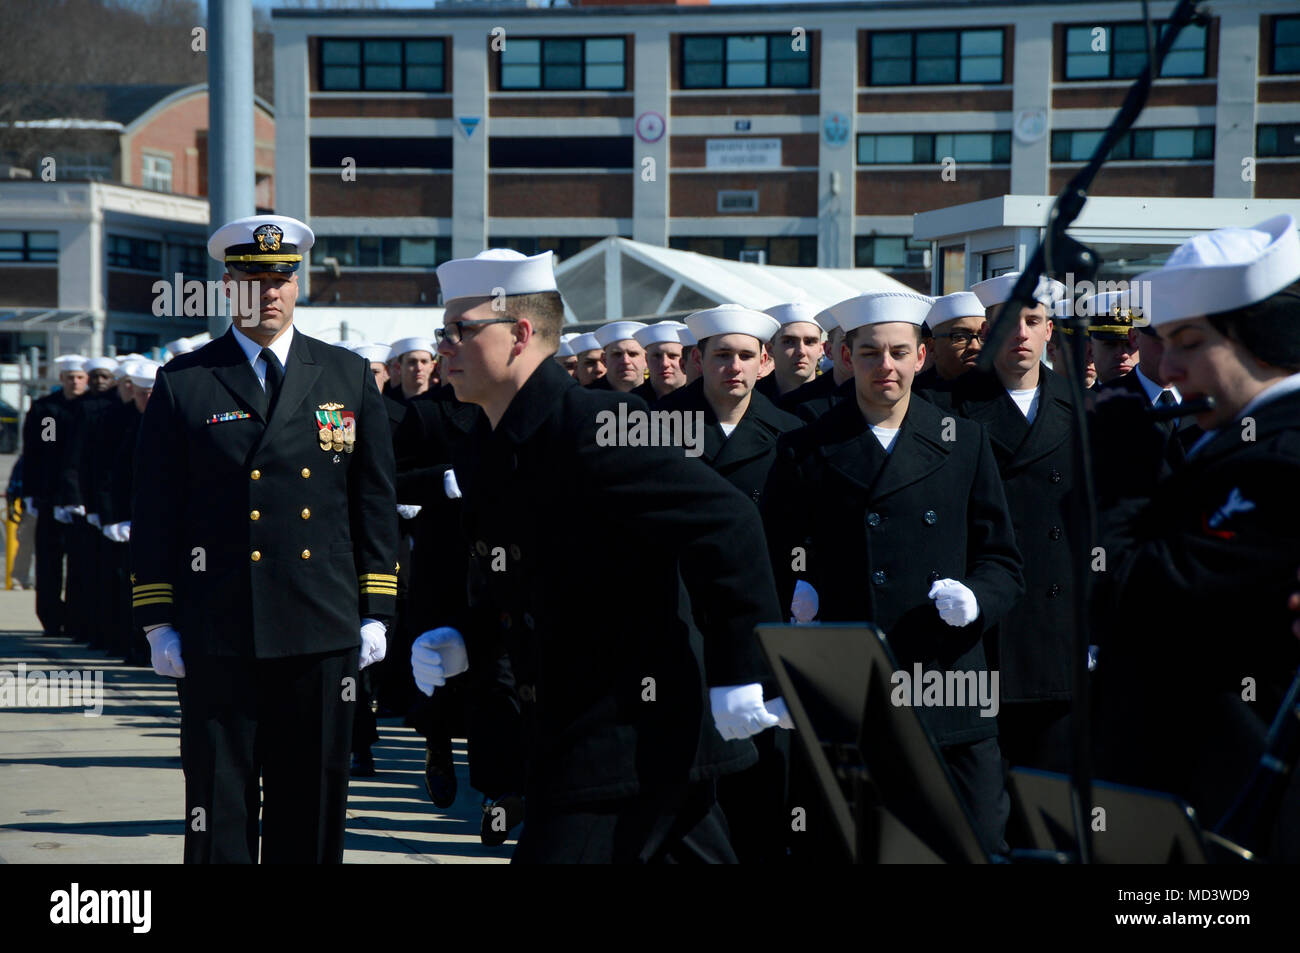 GROTON, Conn. (March 17, 2018) Annie Mabus announces 'Bring the Ship to Life' spurring its crew members to race accross the brown and fall in formation aboard USS Colorado (SSN 788) during the commissioning ceremony on Naval Submarine Base New London.  Colorado is the U.S. Navy's 15th Virginia-class attack submarine and the second ship fourth ship named for the State of Colorado.  (U.S. Navy photo by Mass Communication Specialist 1st Class Jeffrey M. Richardson/Released) - Stock Image